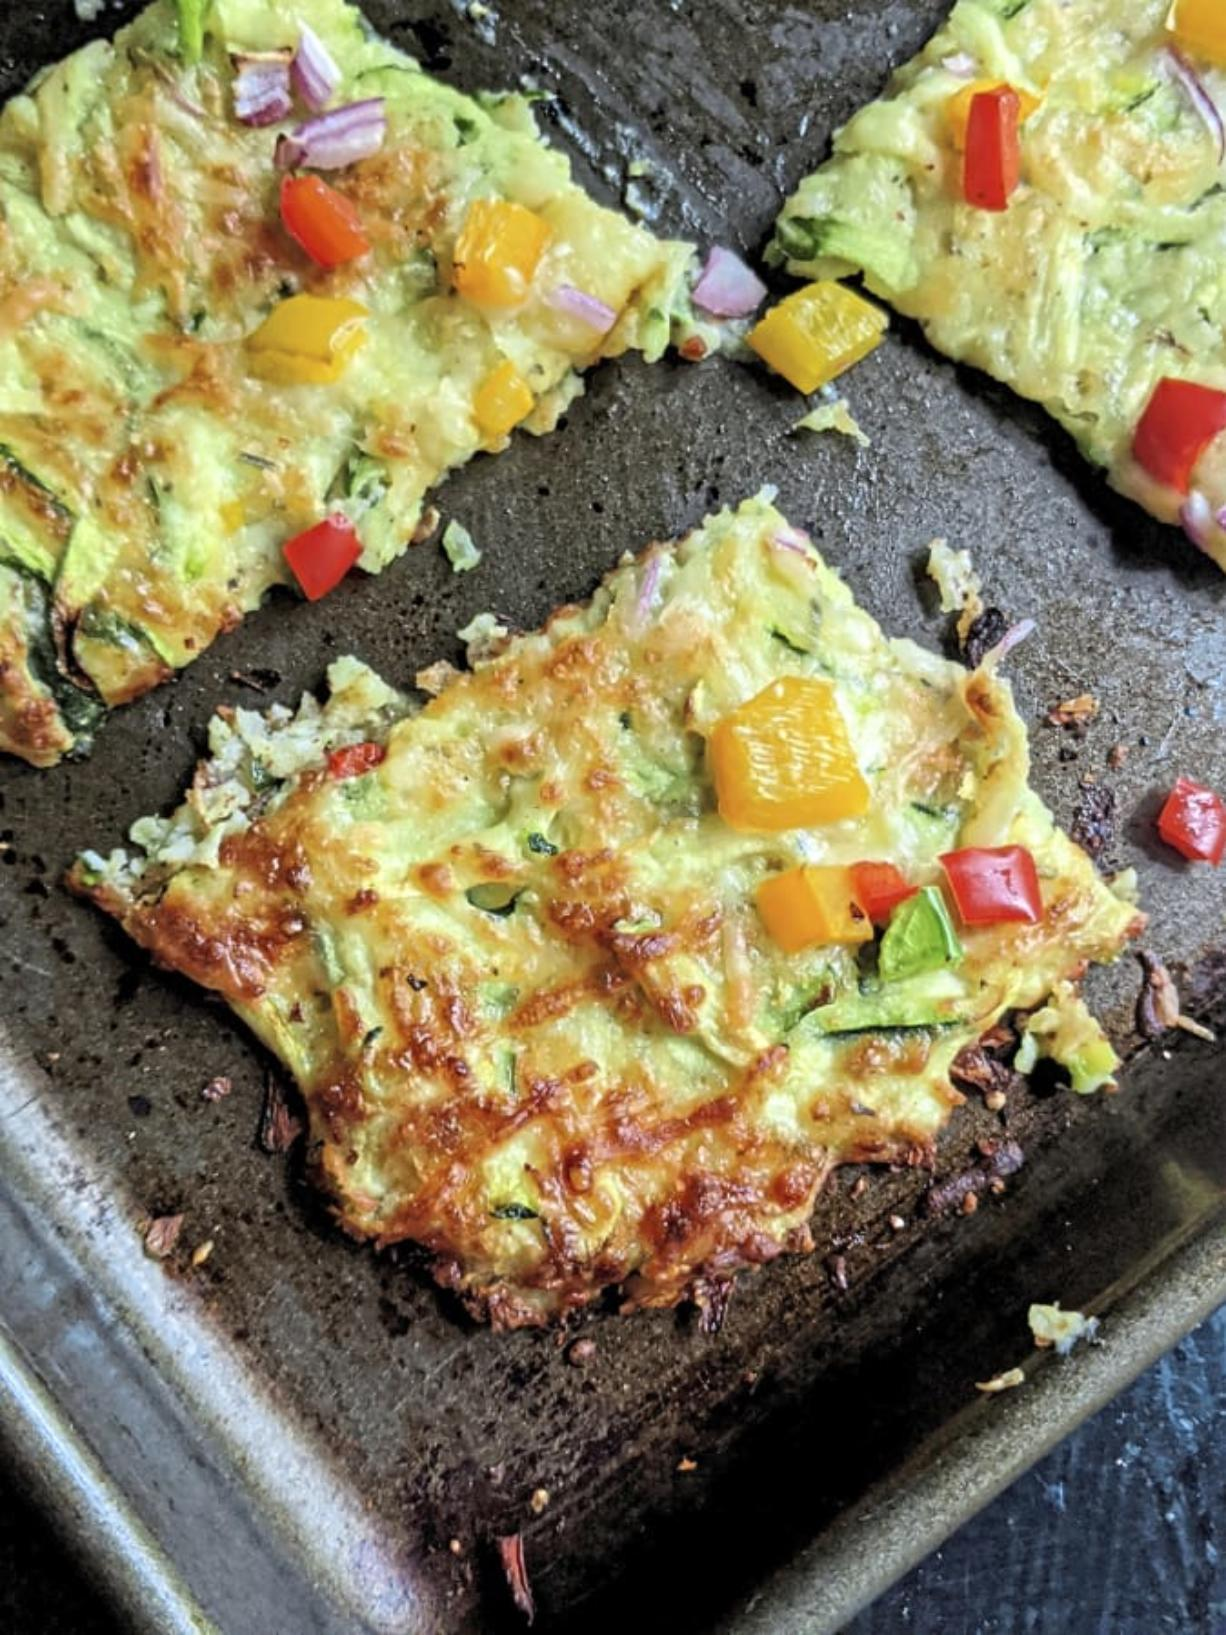 This vegetarian pizza is made with shredded zucchini, mozzarella and Parmesan cheeses and egg.